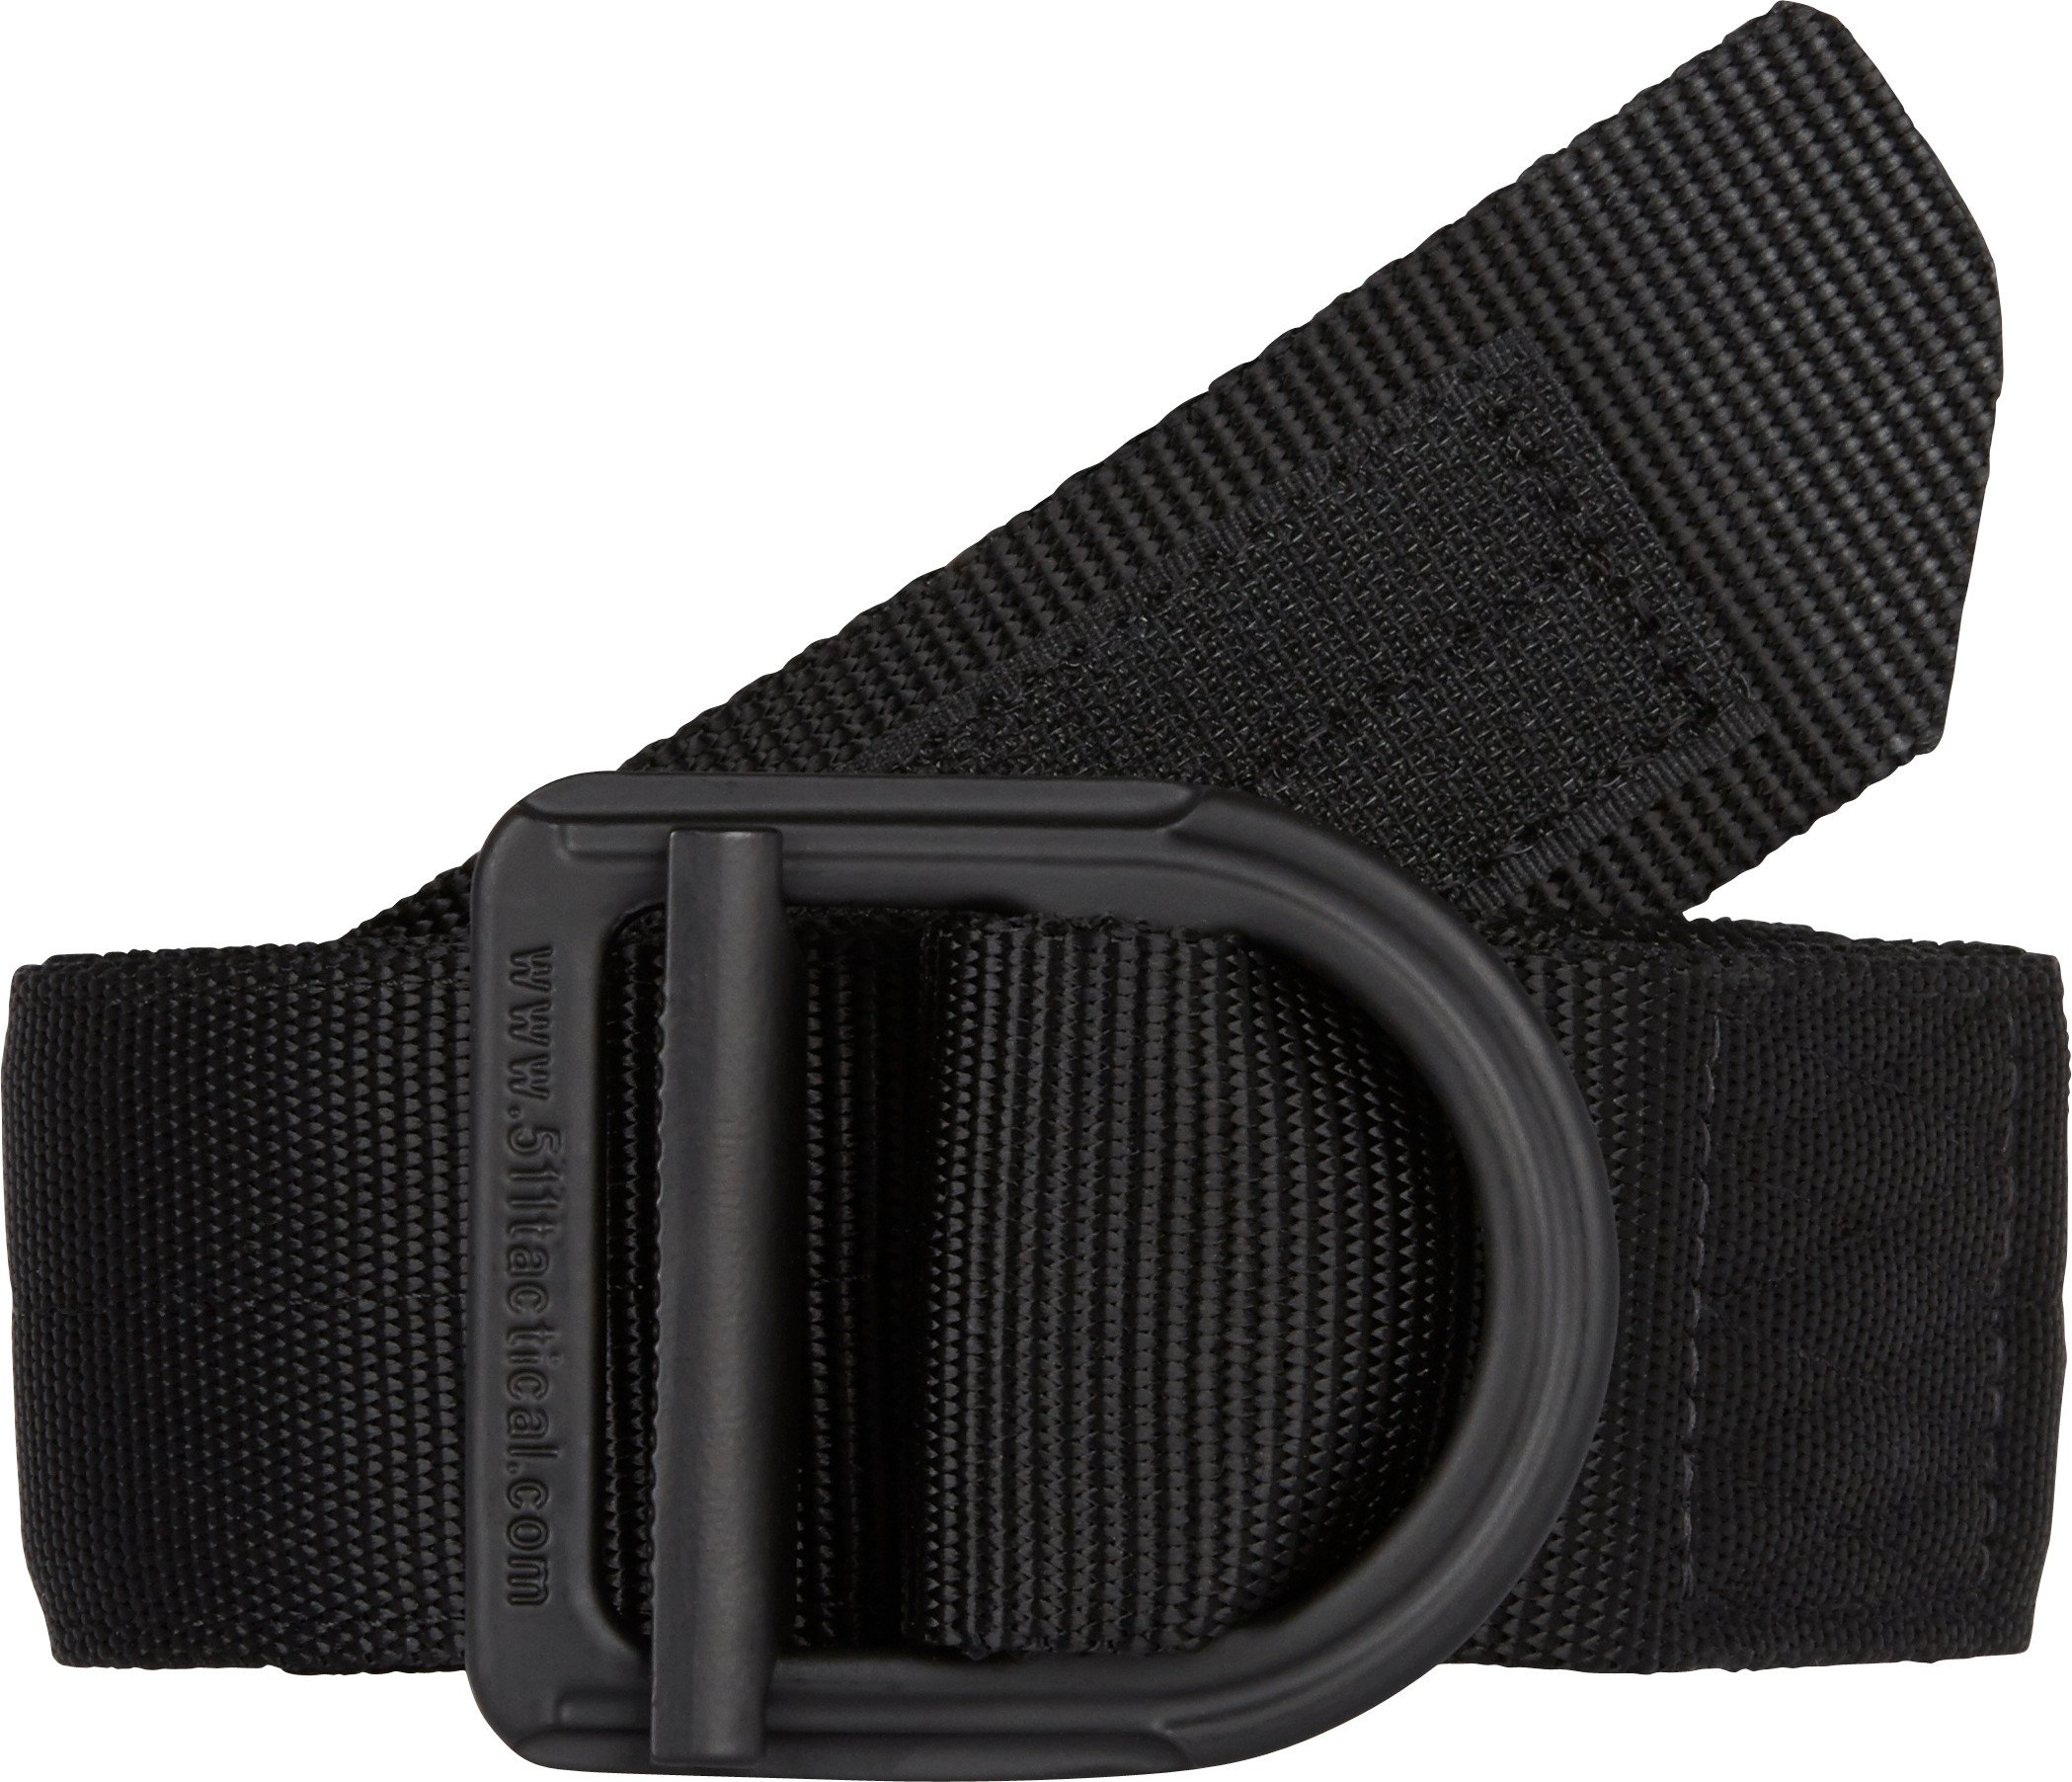 5.11 Tactical Operator 1 3/4'' Belt by 5.11